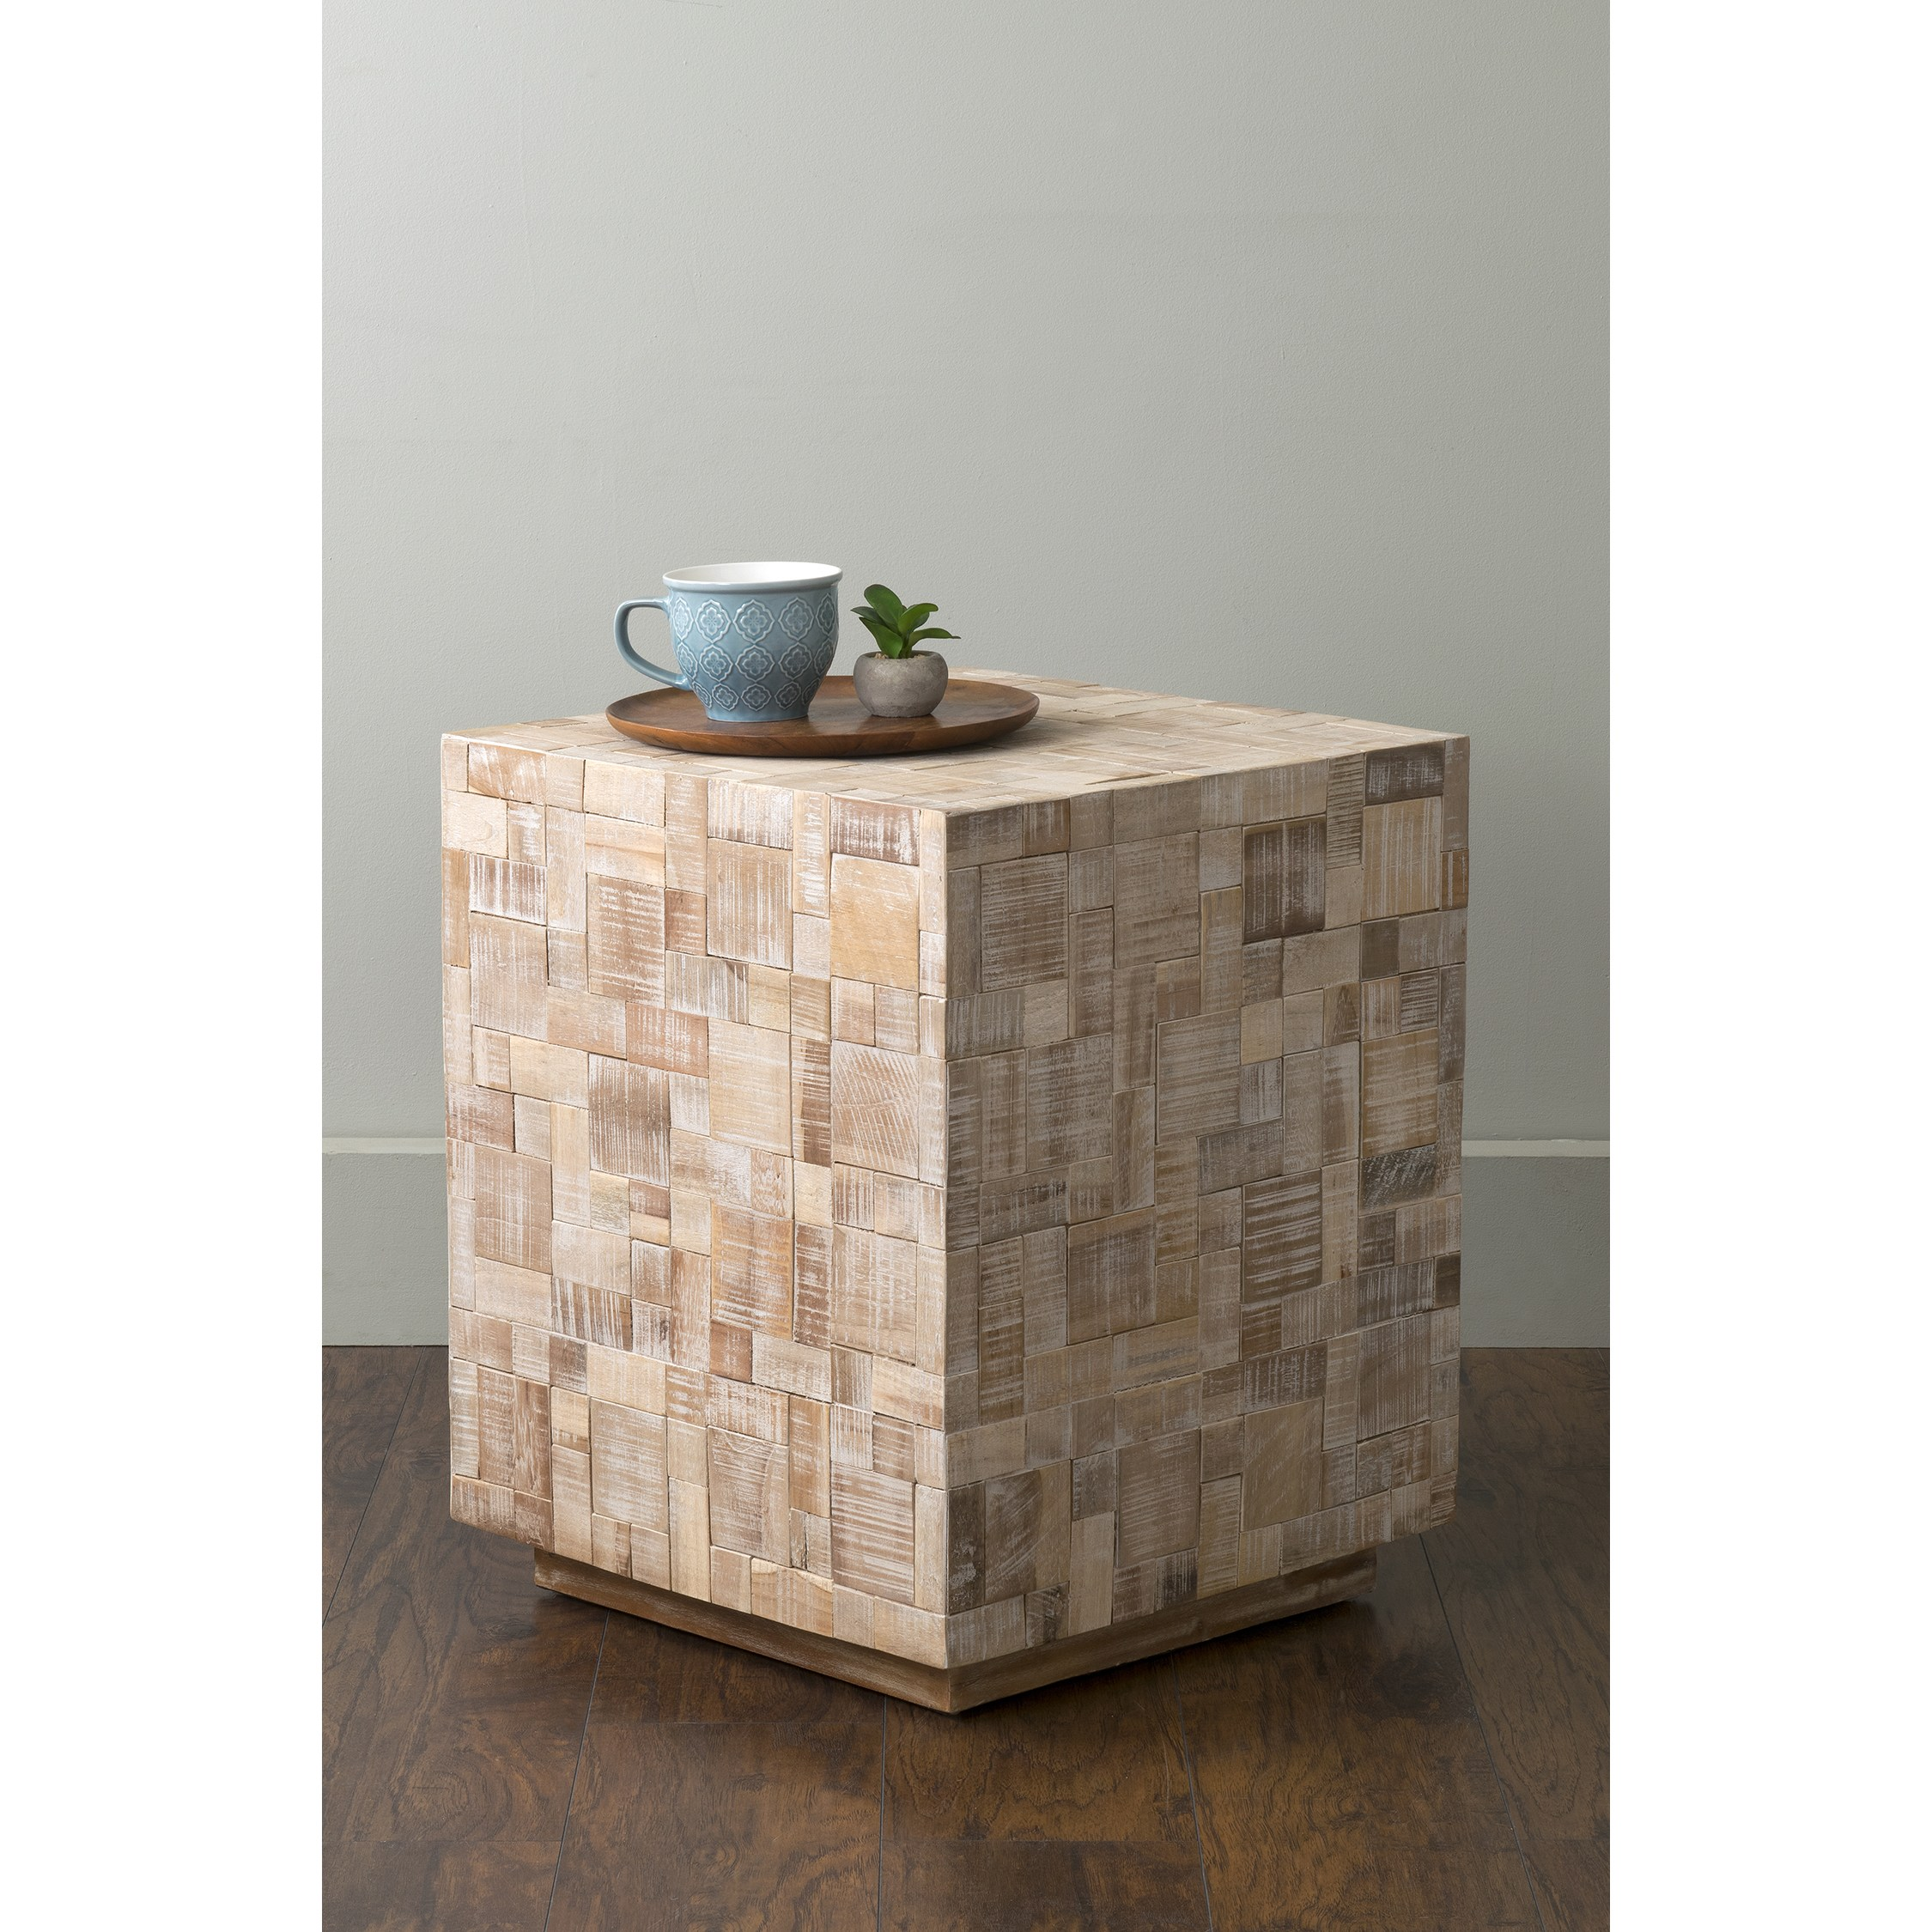 east main off white mosaic wood square accent mains table free shipping today garden supplies modern coffee with drawers wall decor ethan allen couches pull out sofa rectangular